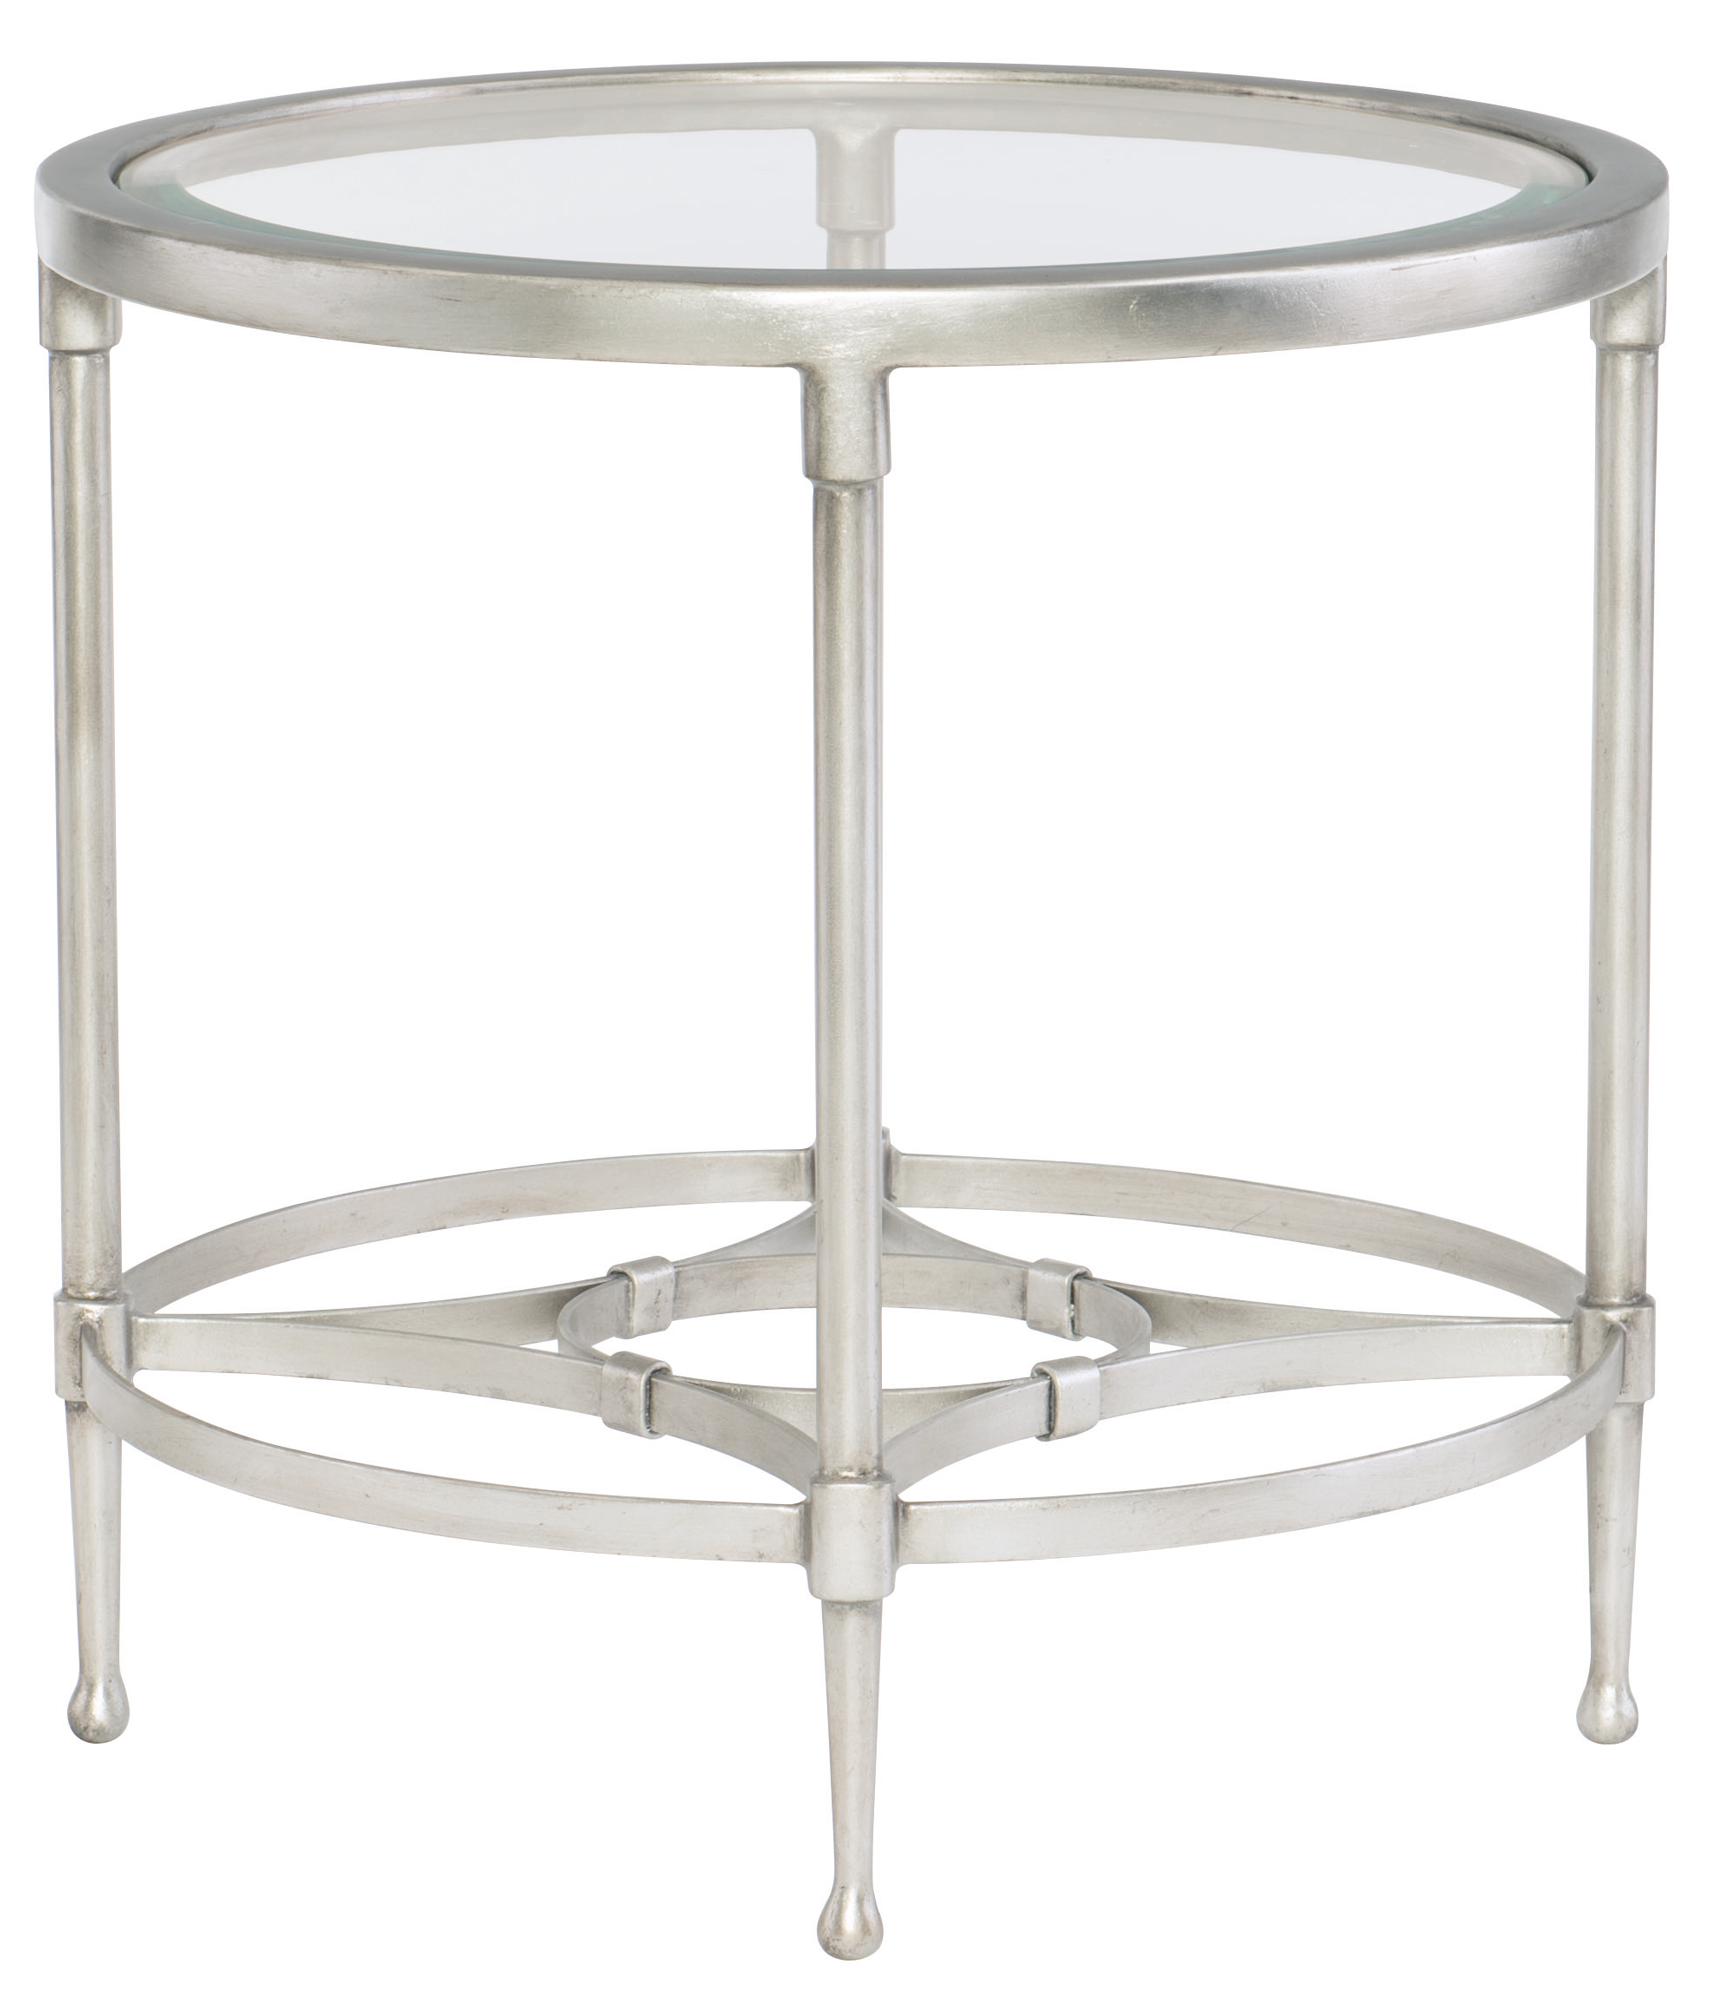 Round Glass Top End Tables Round Metal End Table With Glass Top Bernhardt Hospitality